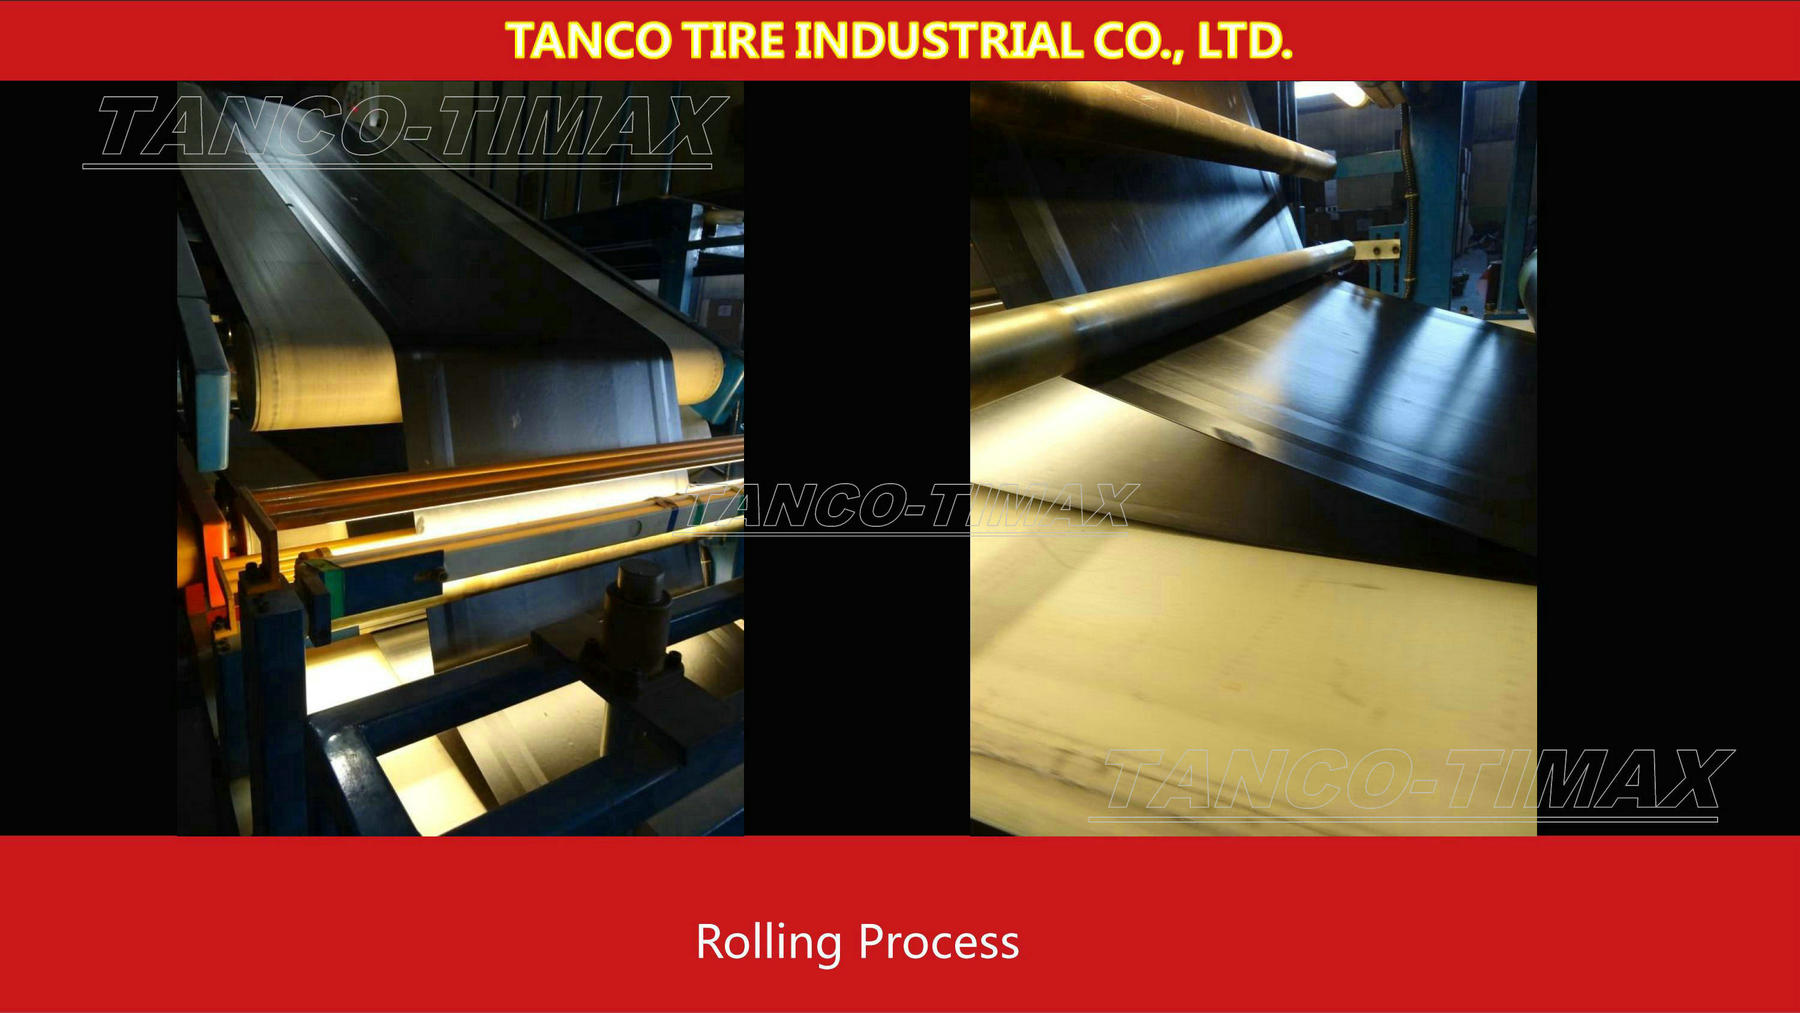 6. Rolling process